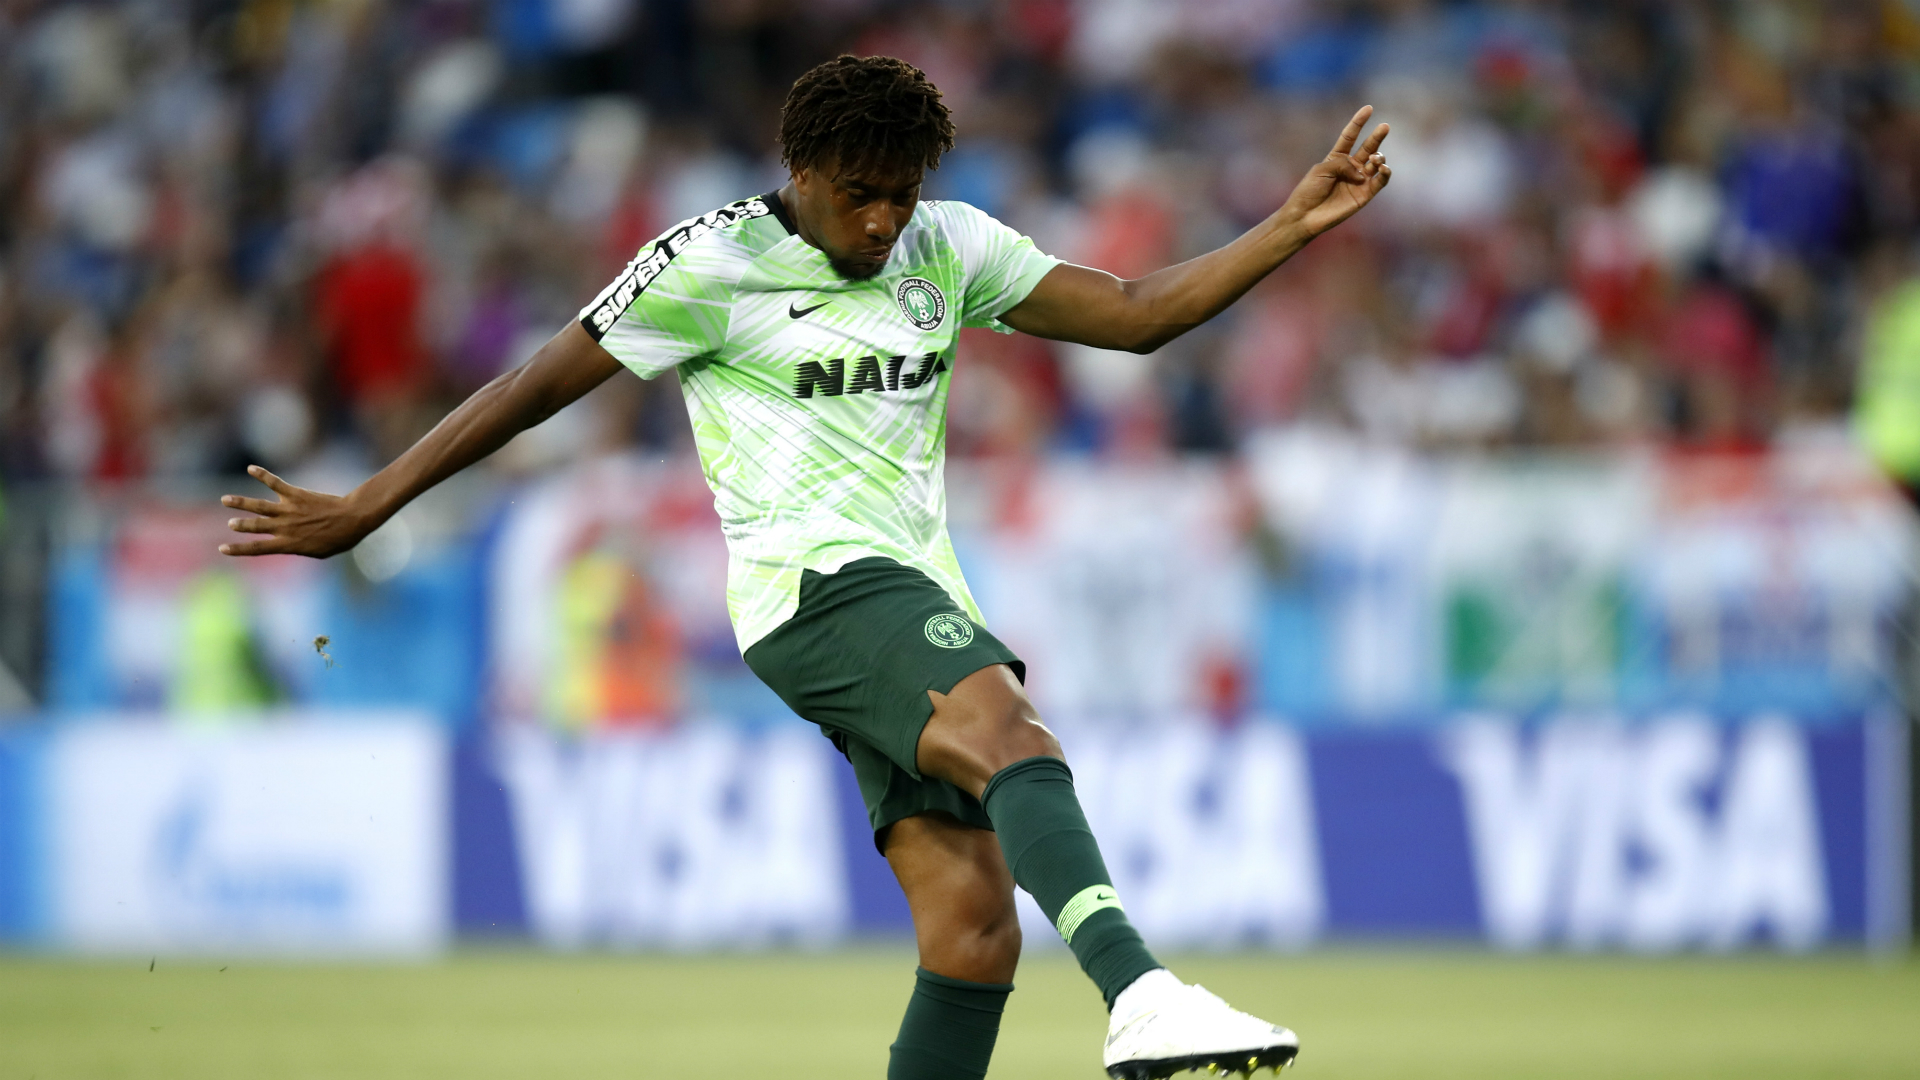 Nigeria 3 Cameroon 2: Iwobi secures comeback win as holders eliminated